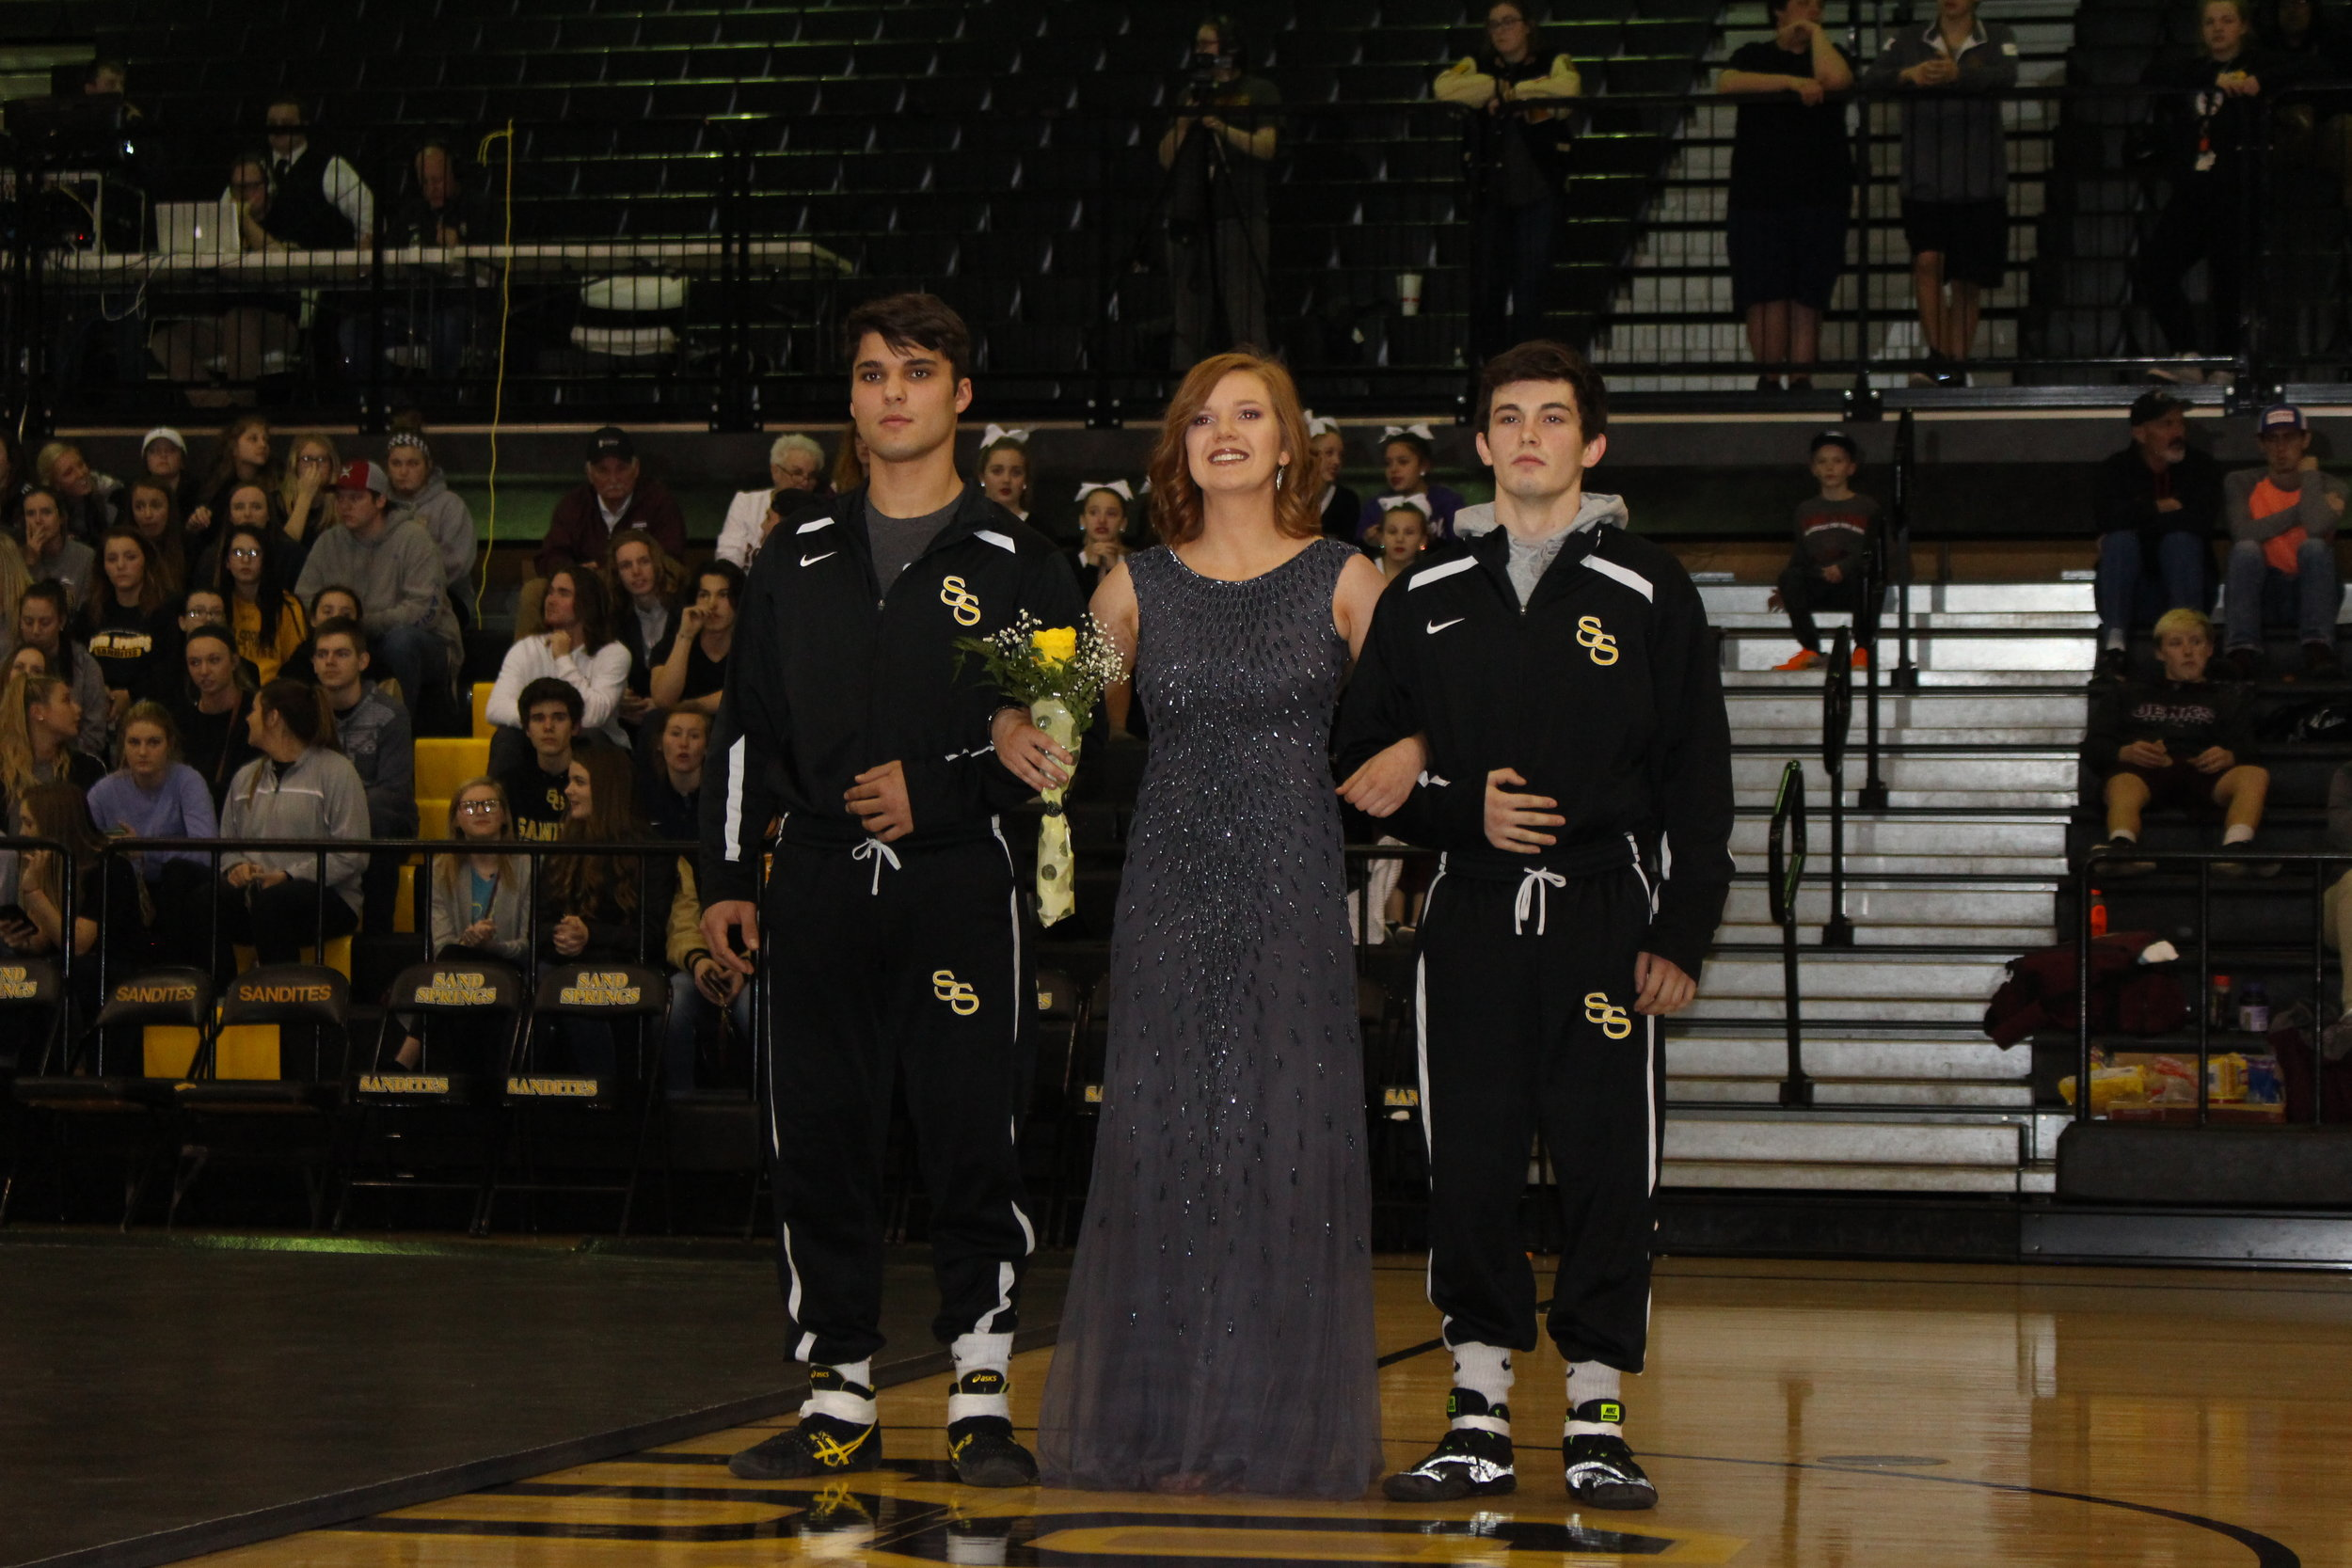 Homecoming Queen Candidate Katie Godown, escorted by Zane Basma and Tanner Ward.